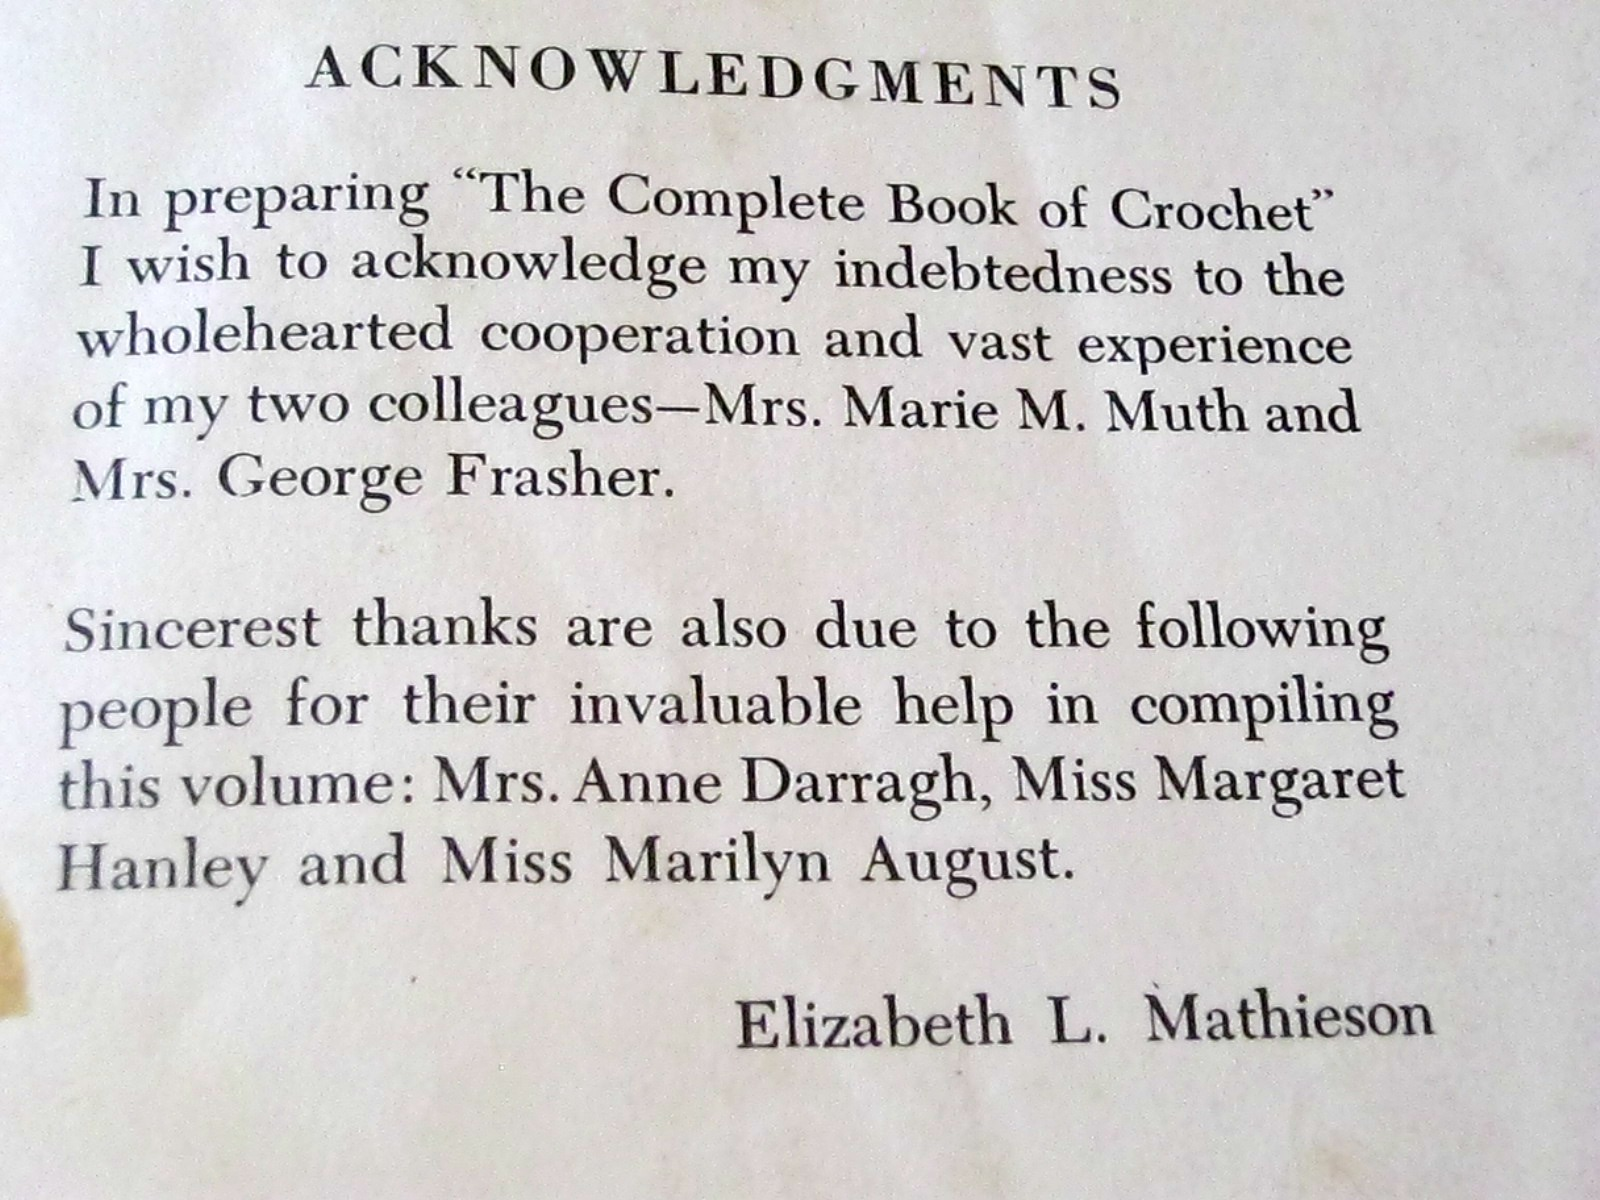 Writing acknowledgements in a book